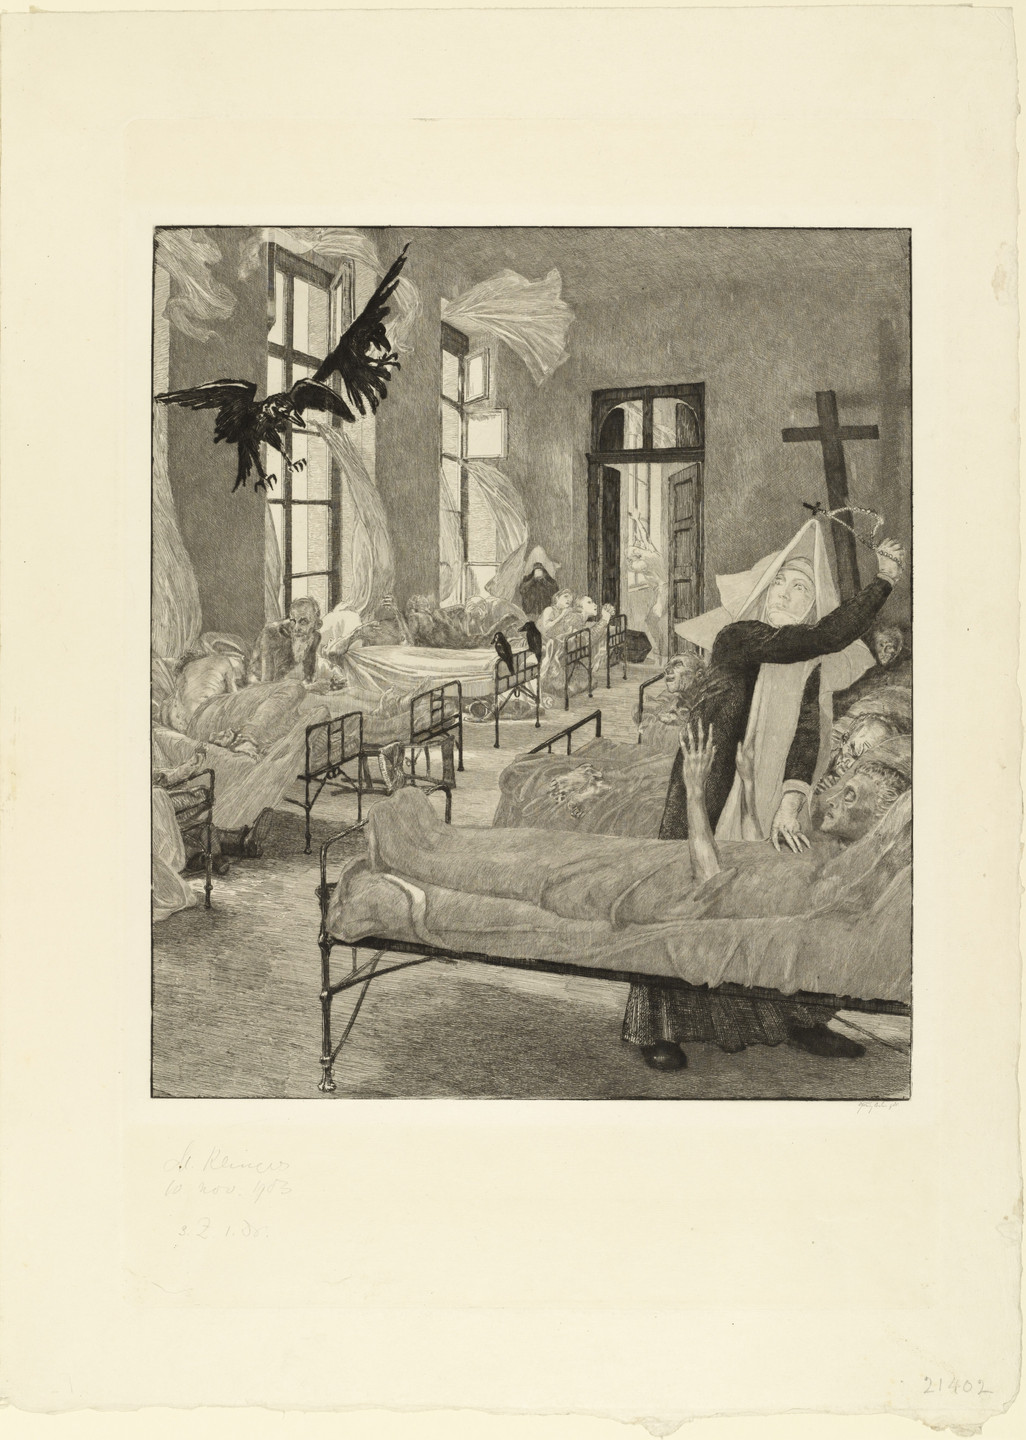 Max Klinger. Plague (Pest) (plate 5) for the portfolio On Death, Part II, Opus XIII (Vom Tode, Zweiter Teil, Opus XIII). 1903 (published 1904)